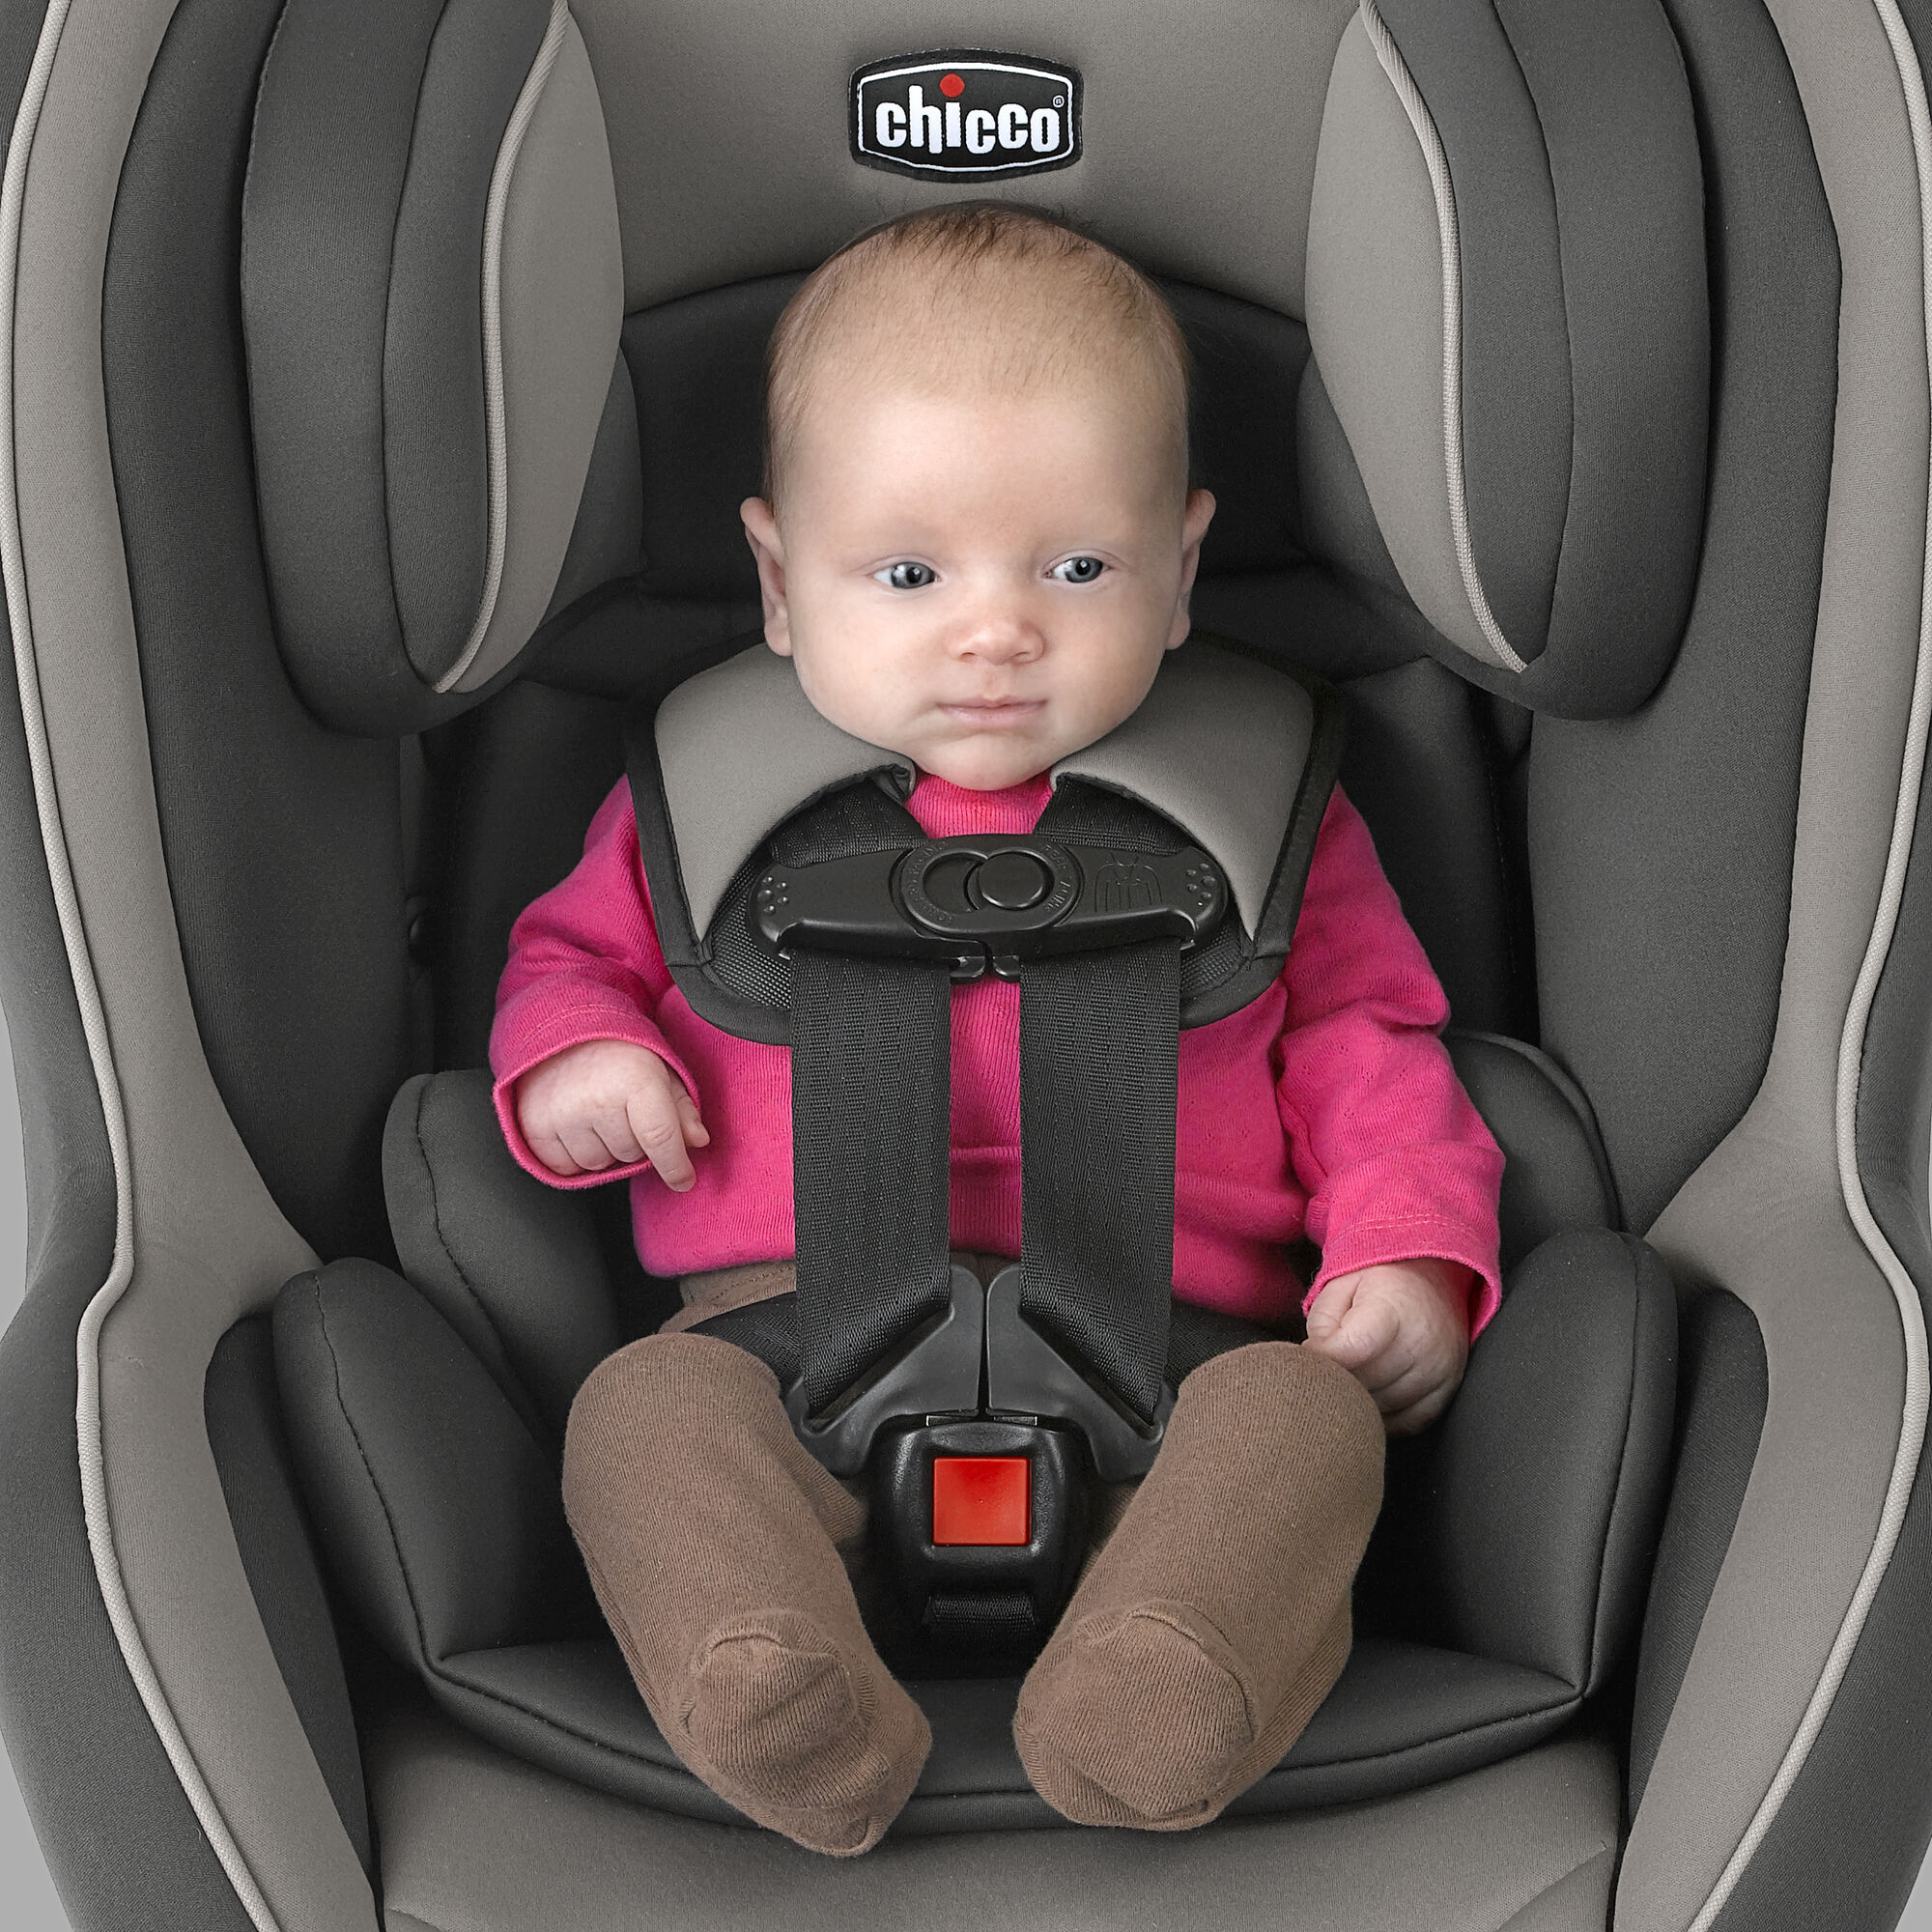 Small Infants Can Use The Chicco NextFit Convertible Car Seat